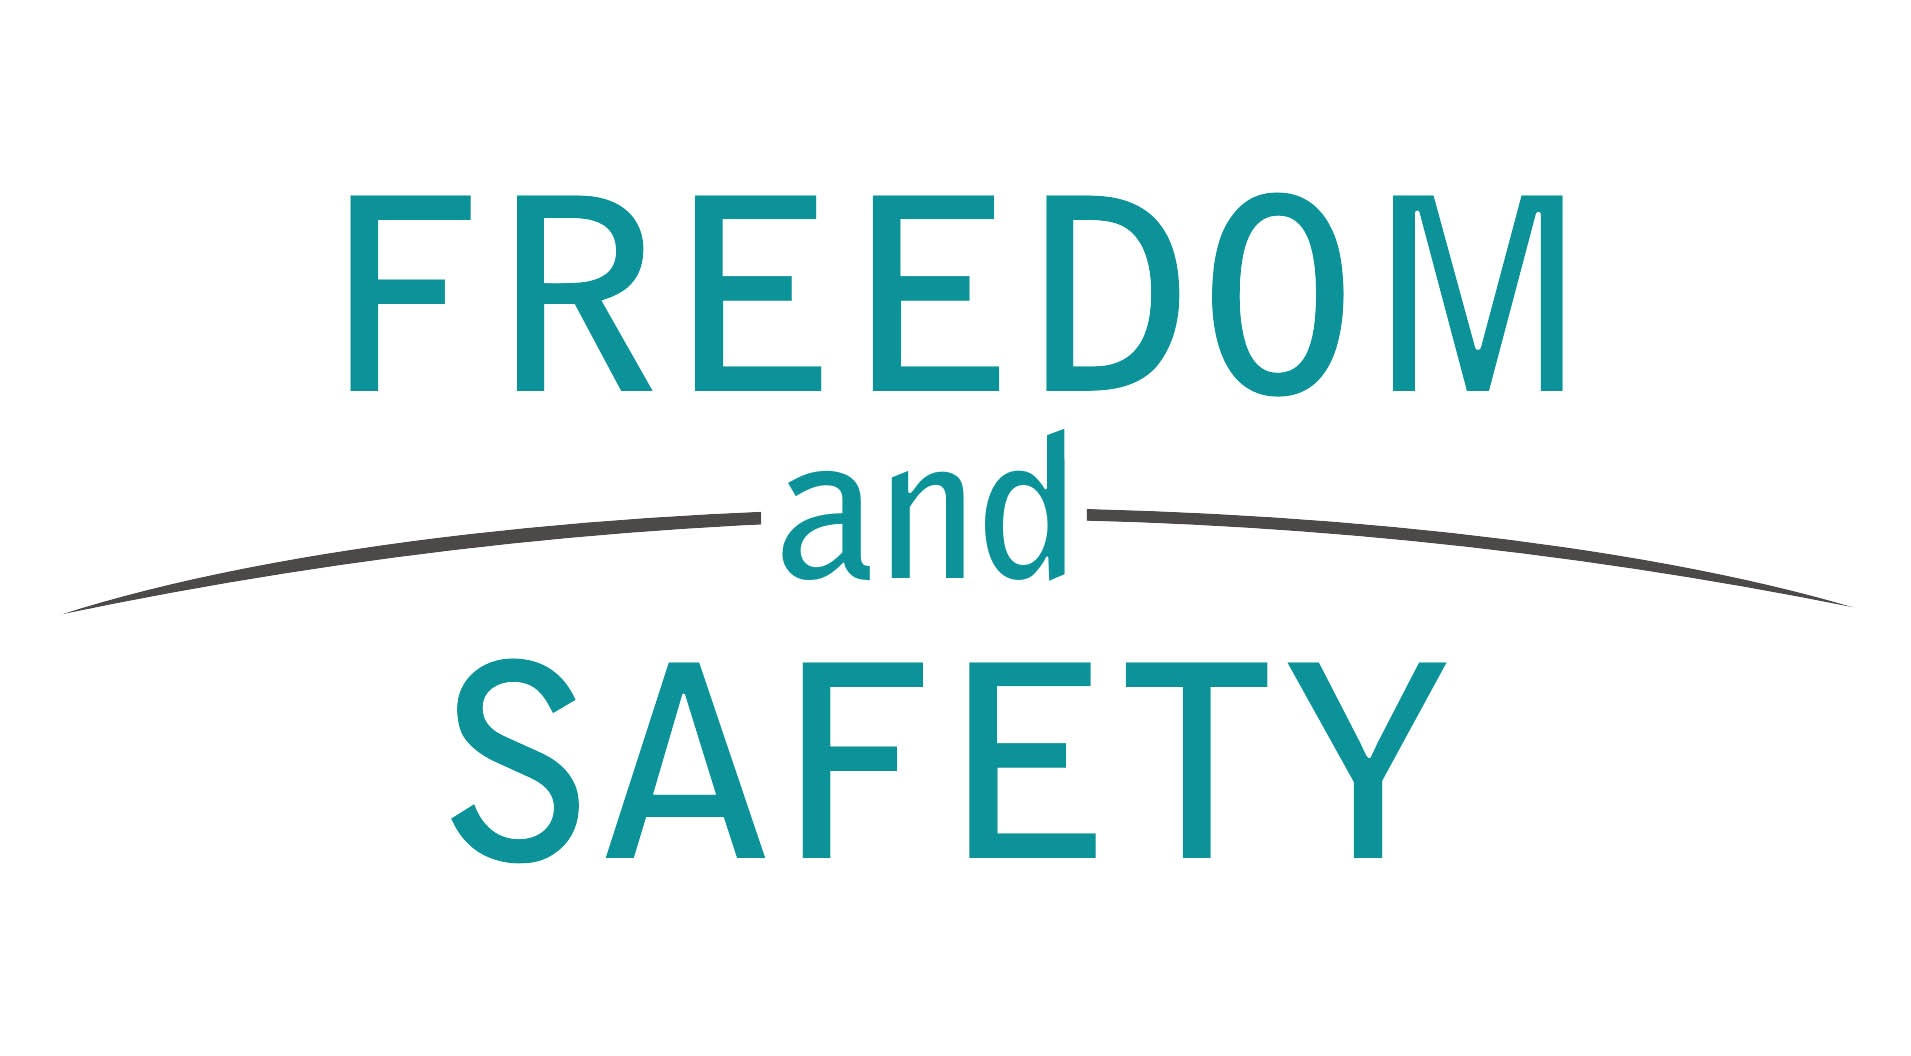 safety and freedom How must america balance security and civil liberties  how must america balance security and liberty  there is both safety and freedom.